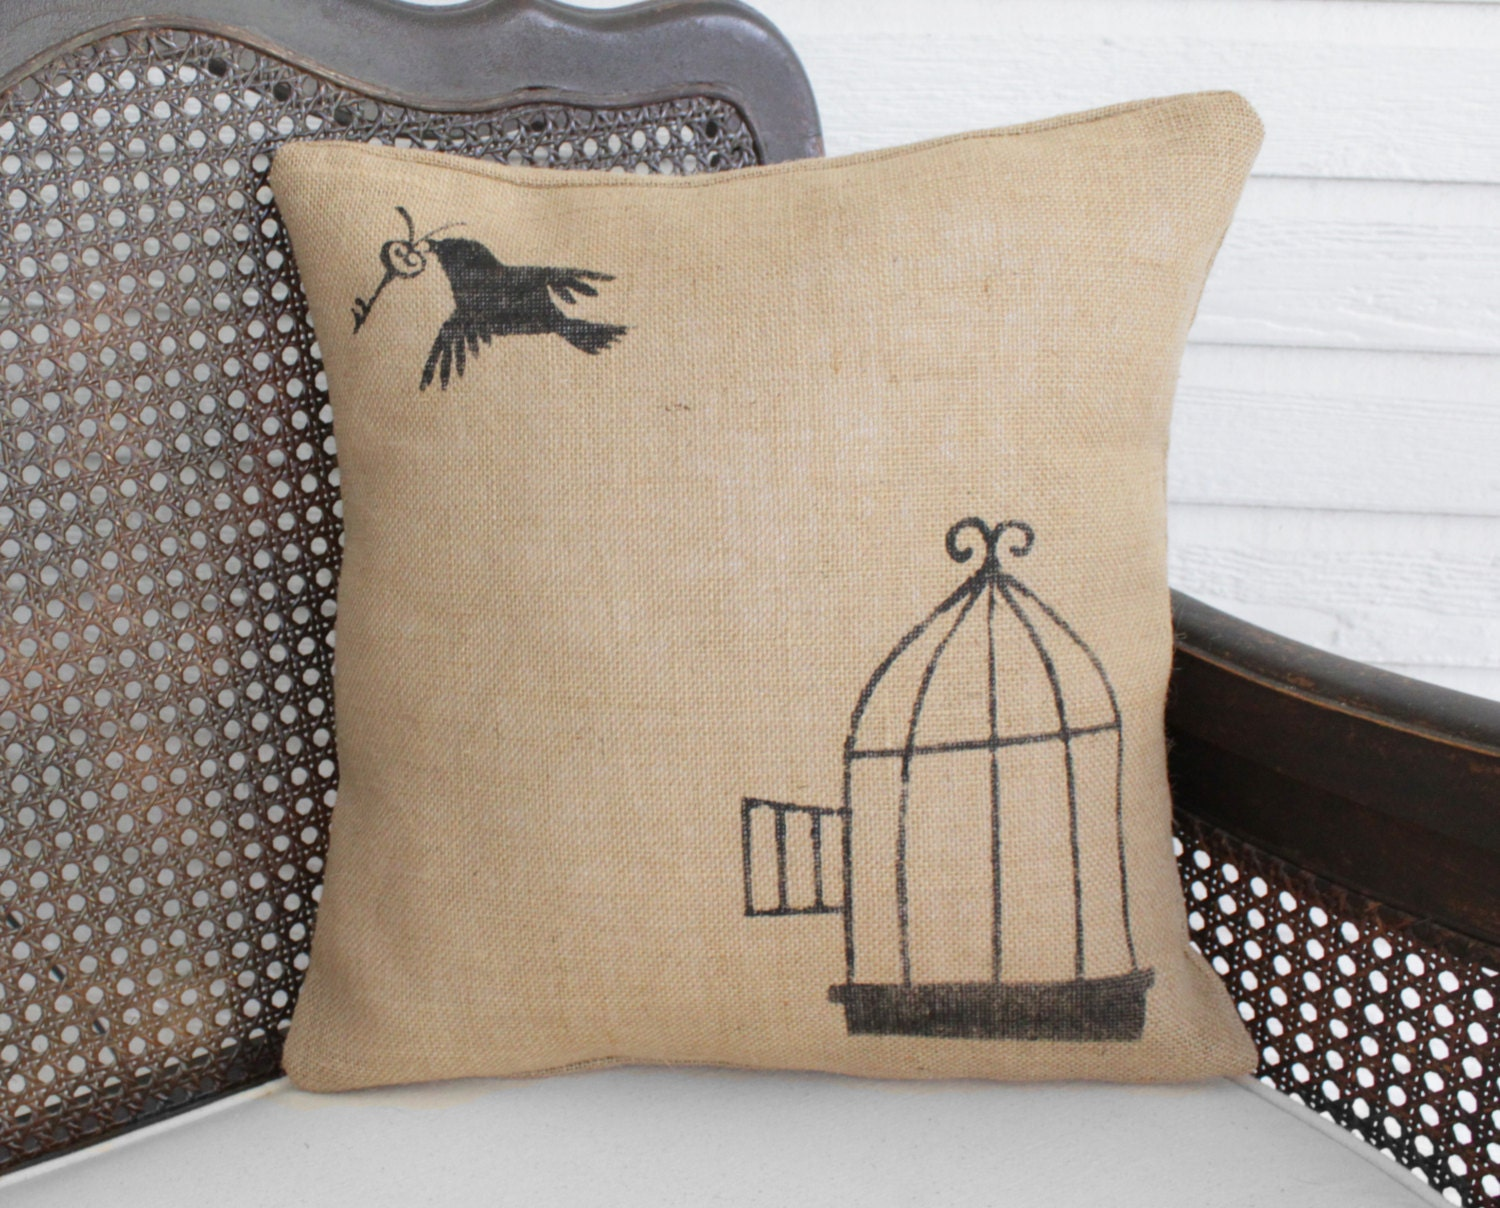 Free To Fly  Burlap Pillow  Bird Cage And Skeleton Key. Decorative Gate Hinges. Living Room Sofa Ideas. Soccer Room Decor. Room Dividing Shelves. Decorate Your Own House Games. Rental Decorations For Wedding Receptions. Decorating New Home. Outdoor Wedding Reception Decorations